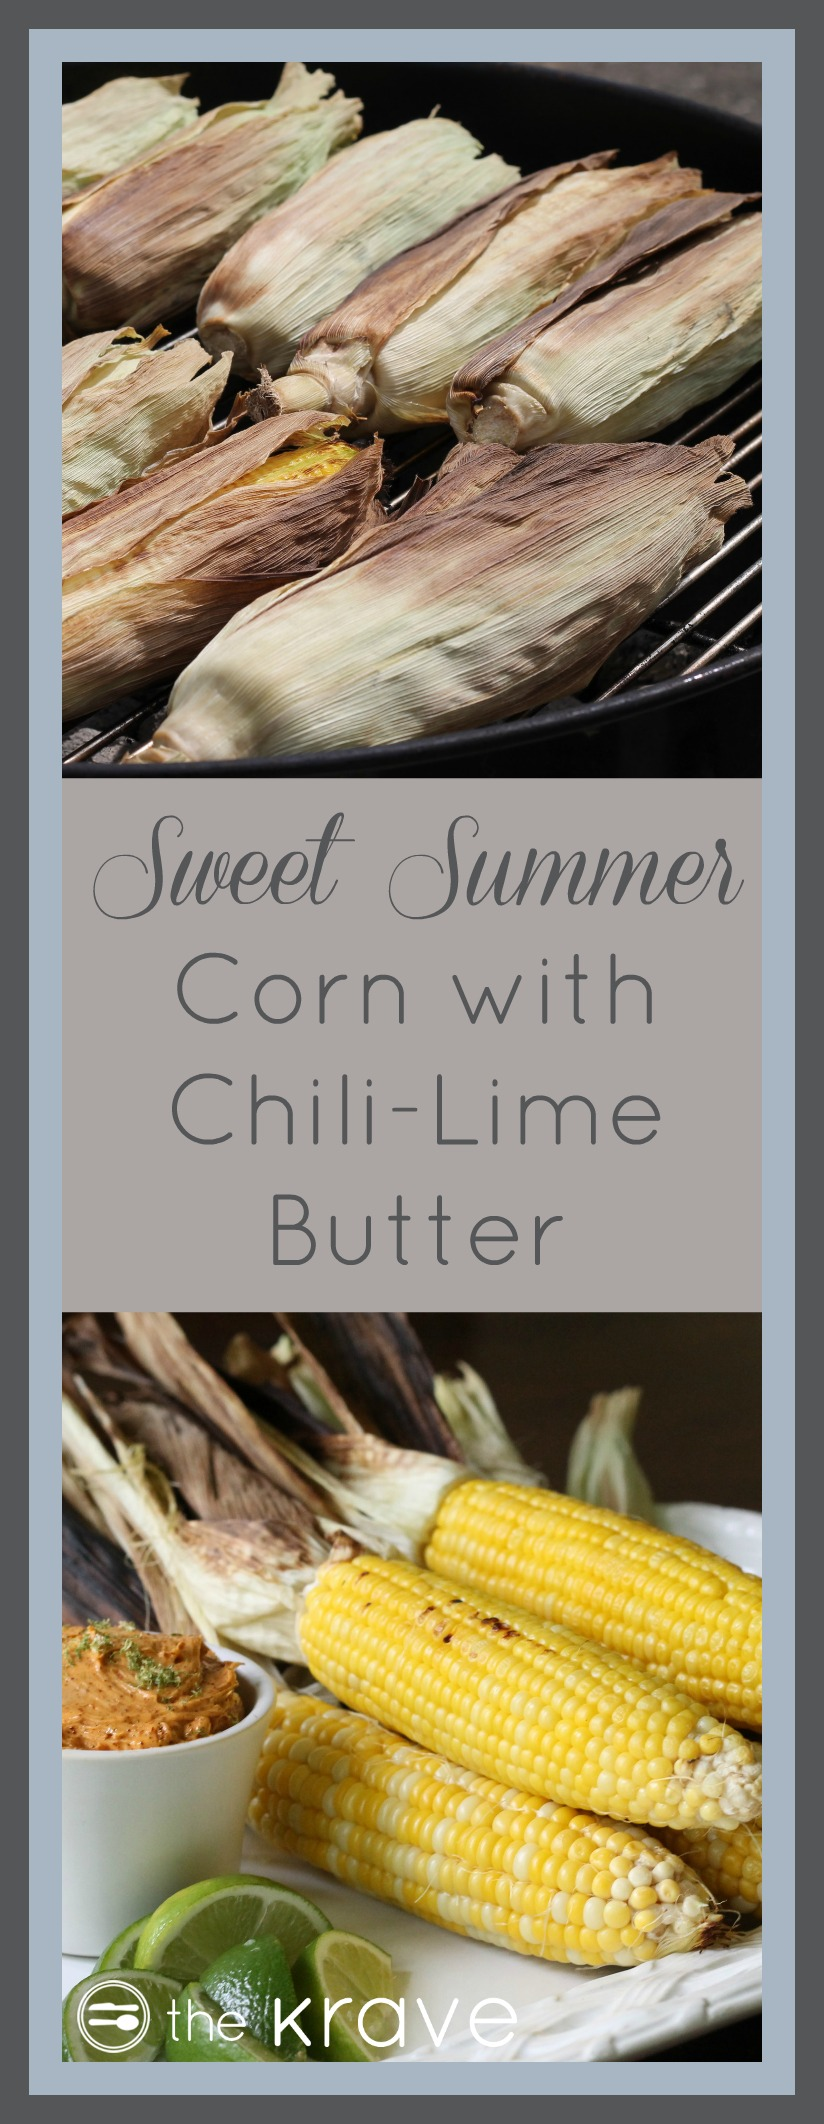 sweet-summer-corn-chili-lime-butter-thekrave